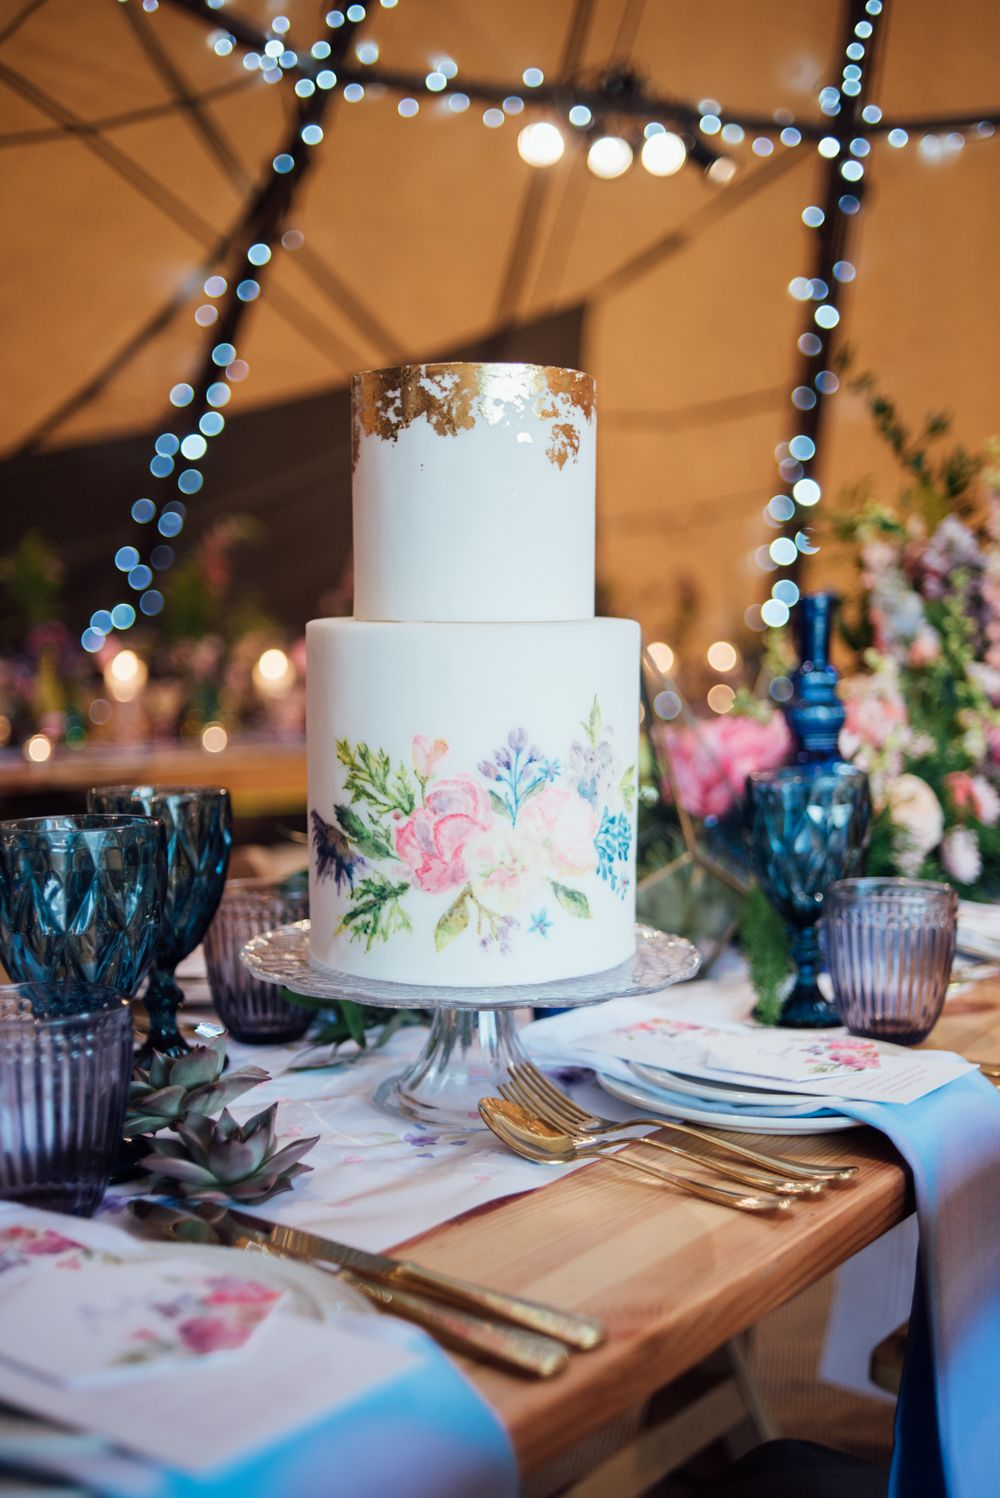 Painted wedding cake from edible essence world inspired tents tipi hire for weddings south west england wales tipi hire rock my wedding the list tipi